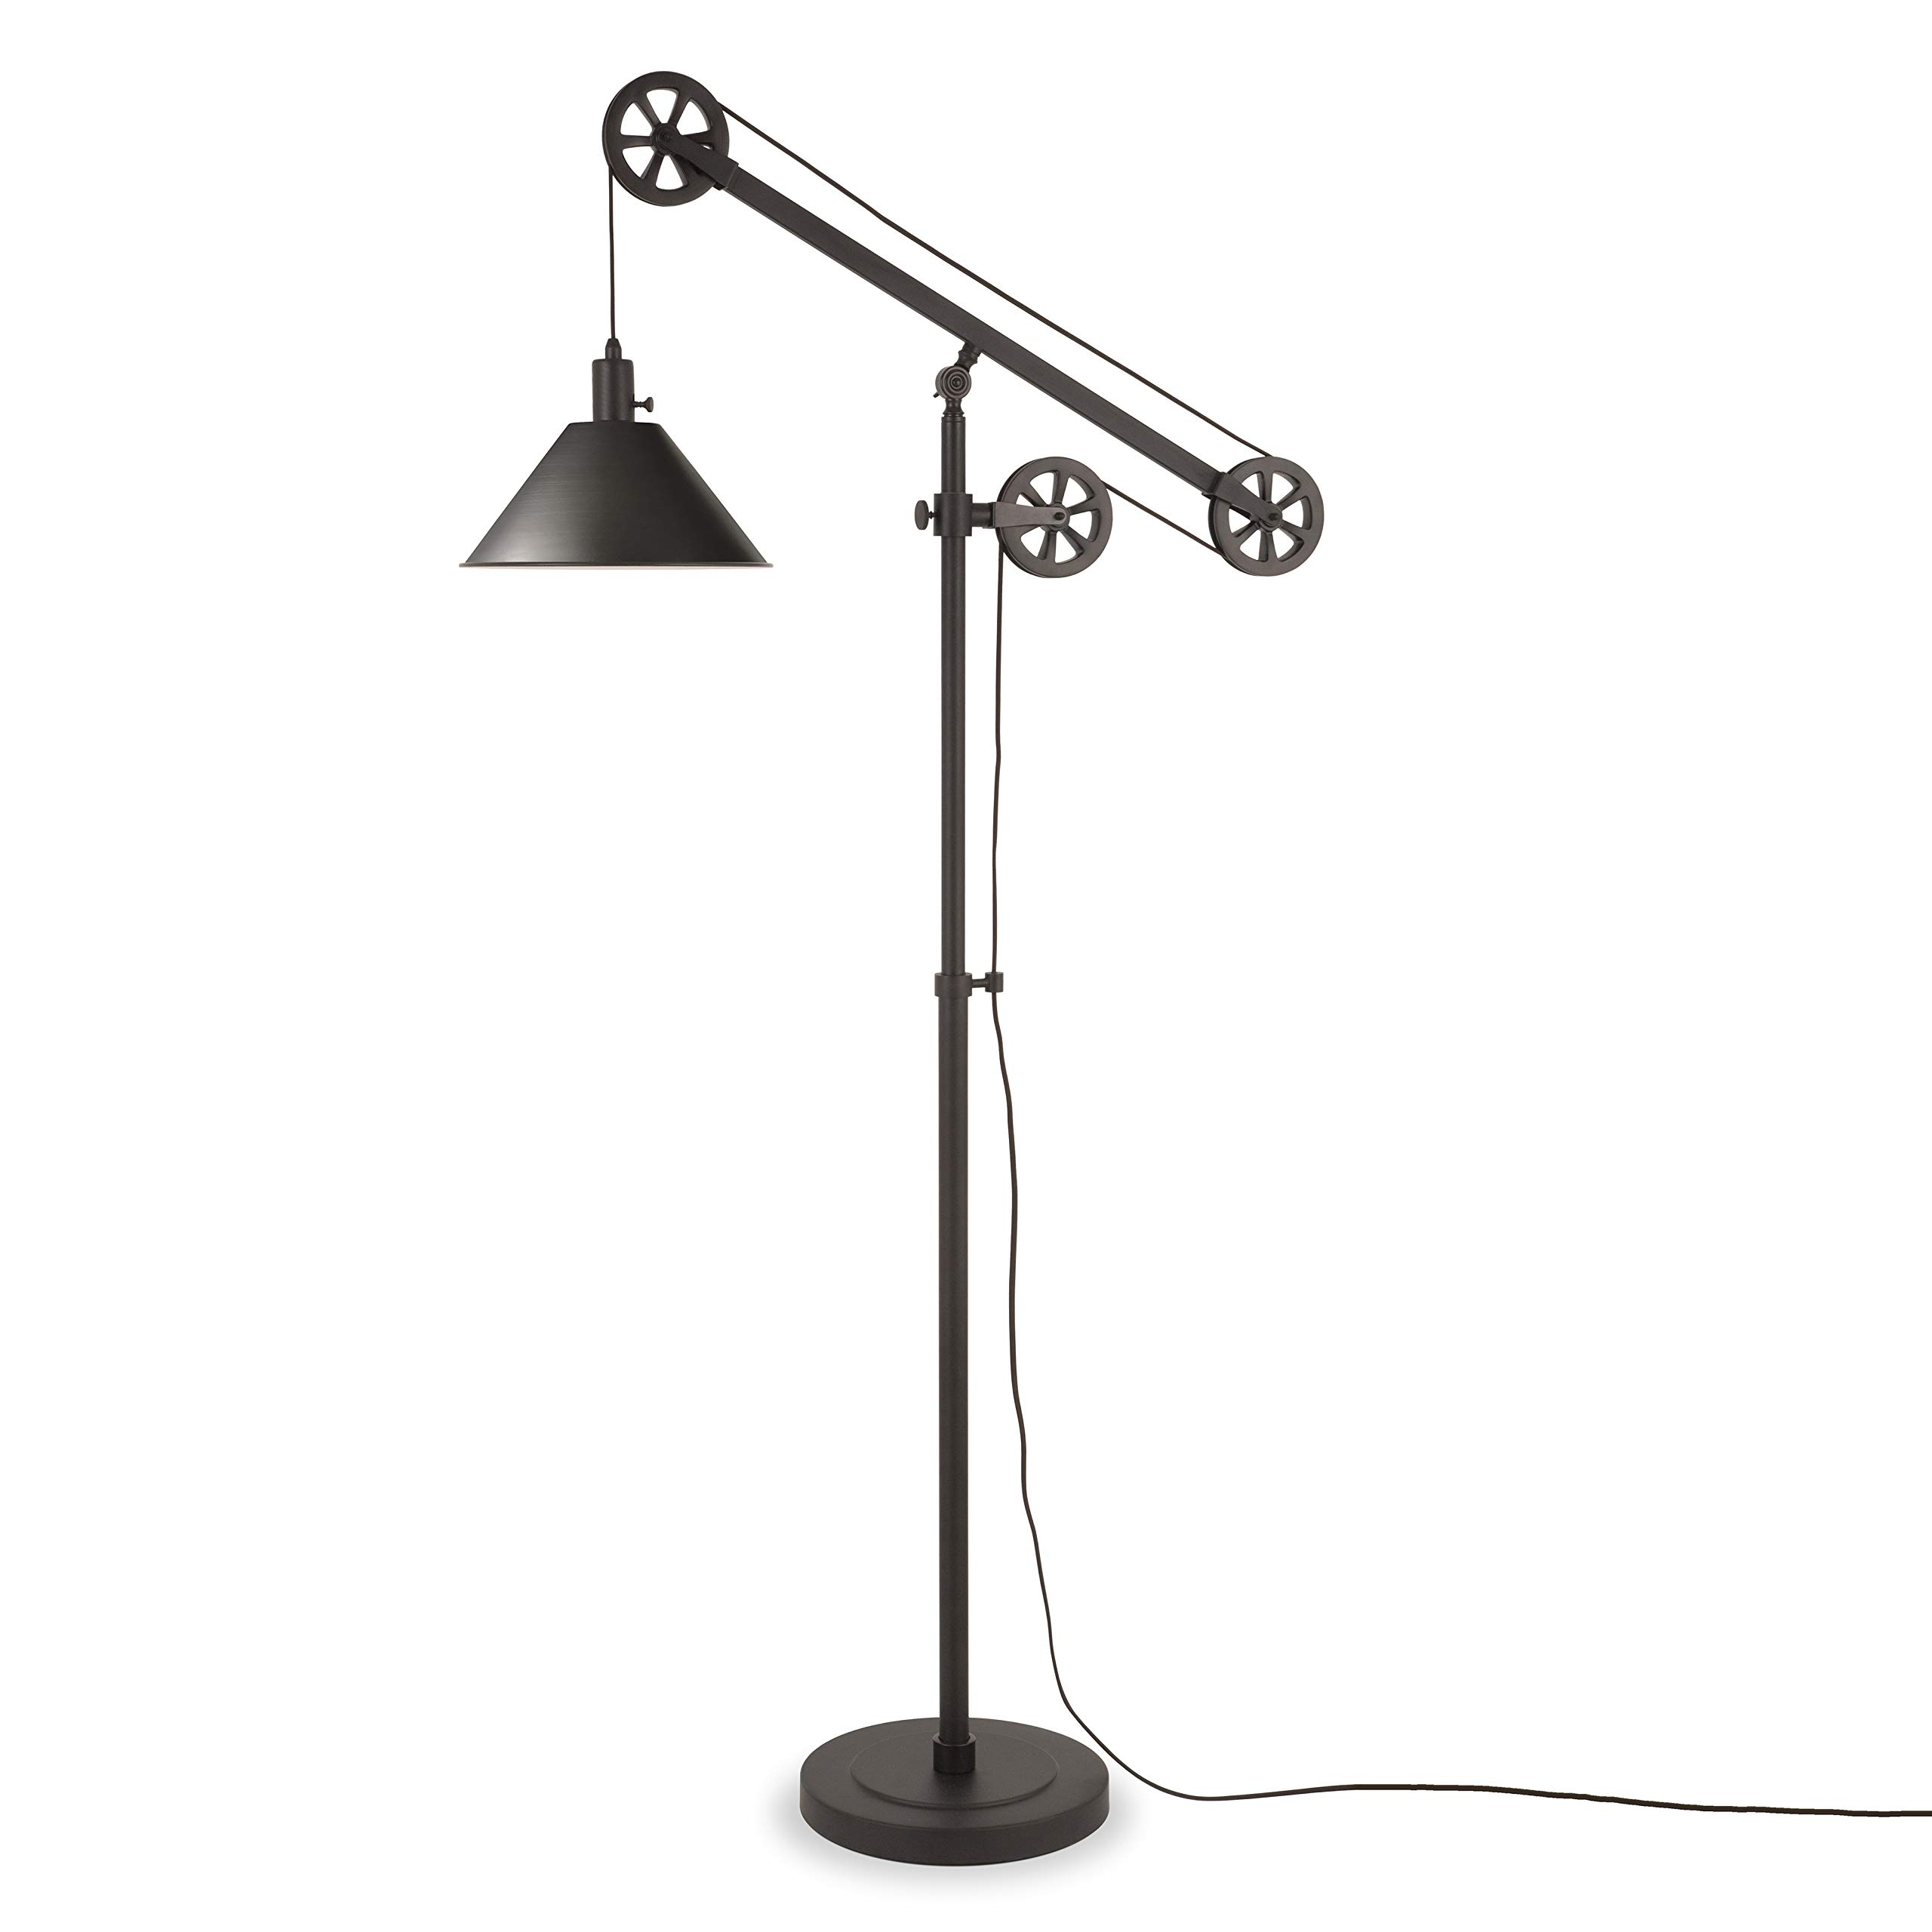 Henn&Hart FL0022 Counterweight Pulley Lamp One Size Black